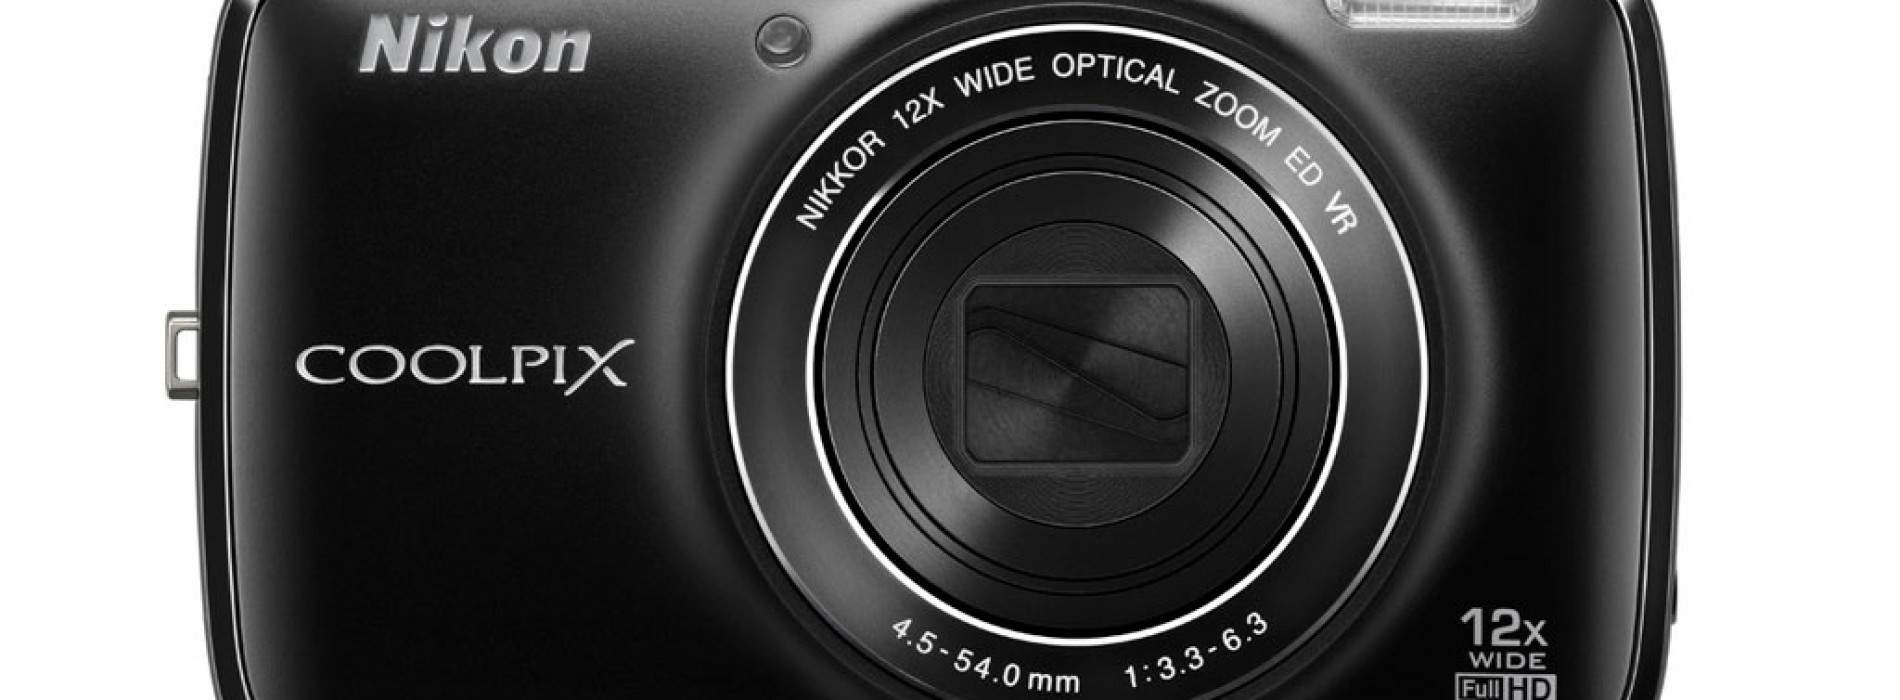 Nikon Coolpix S810c: Captura y comparte